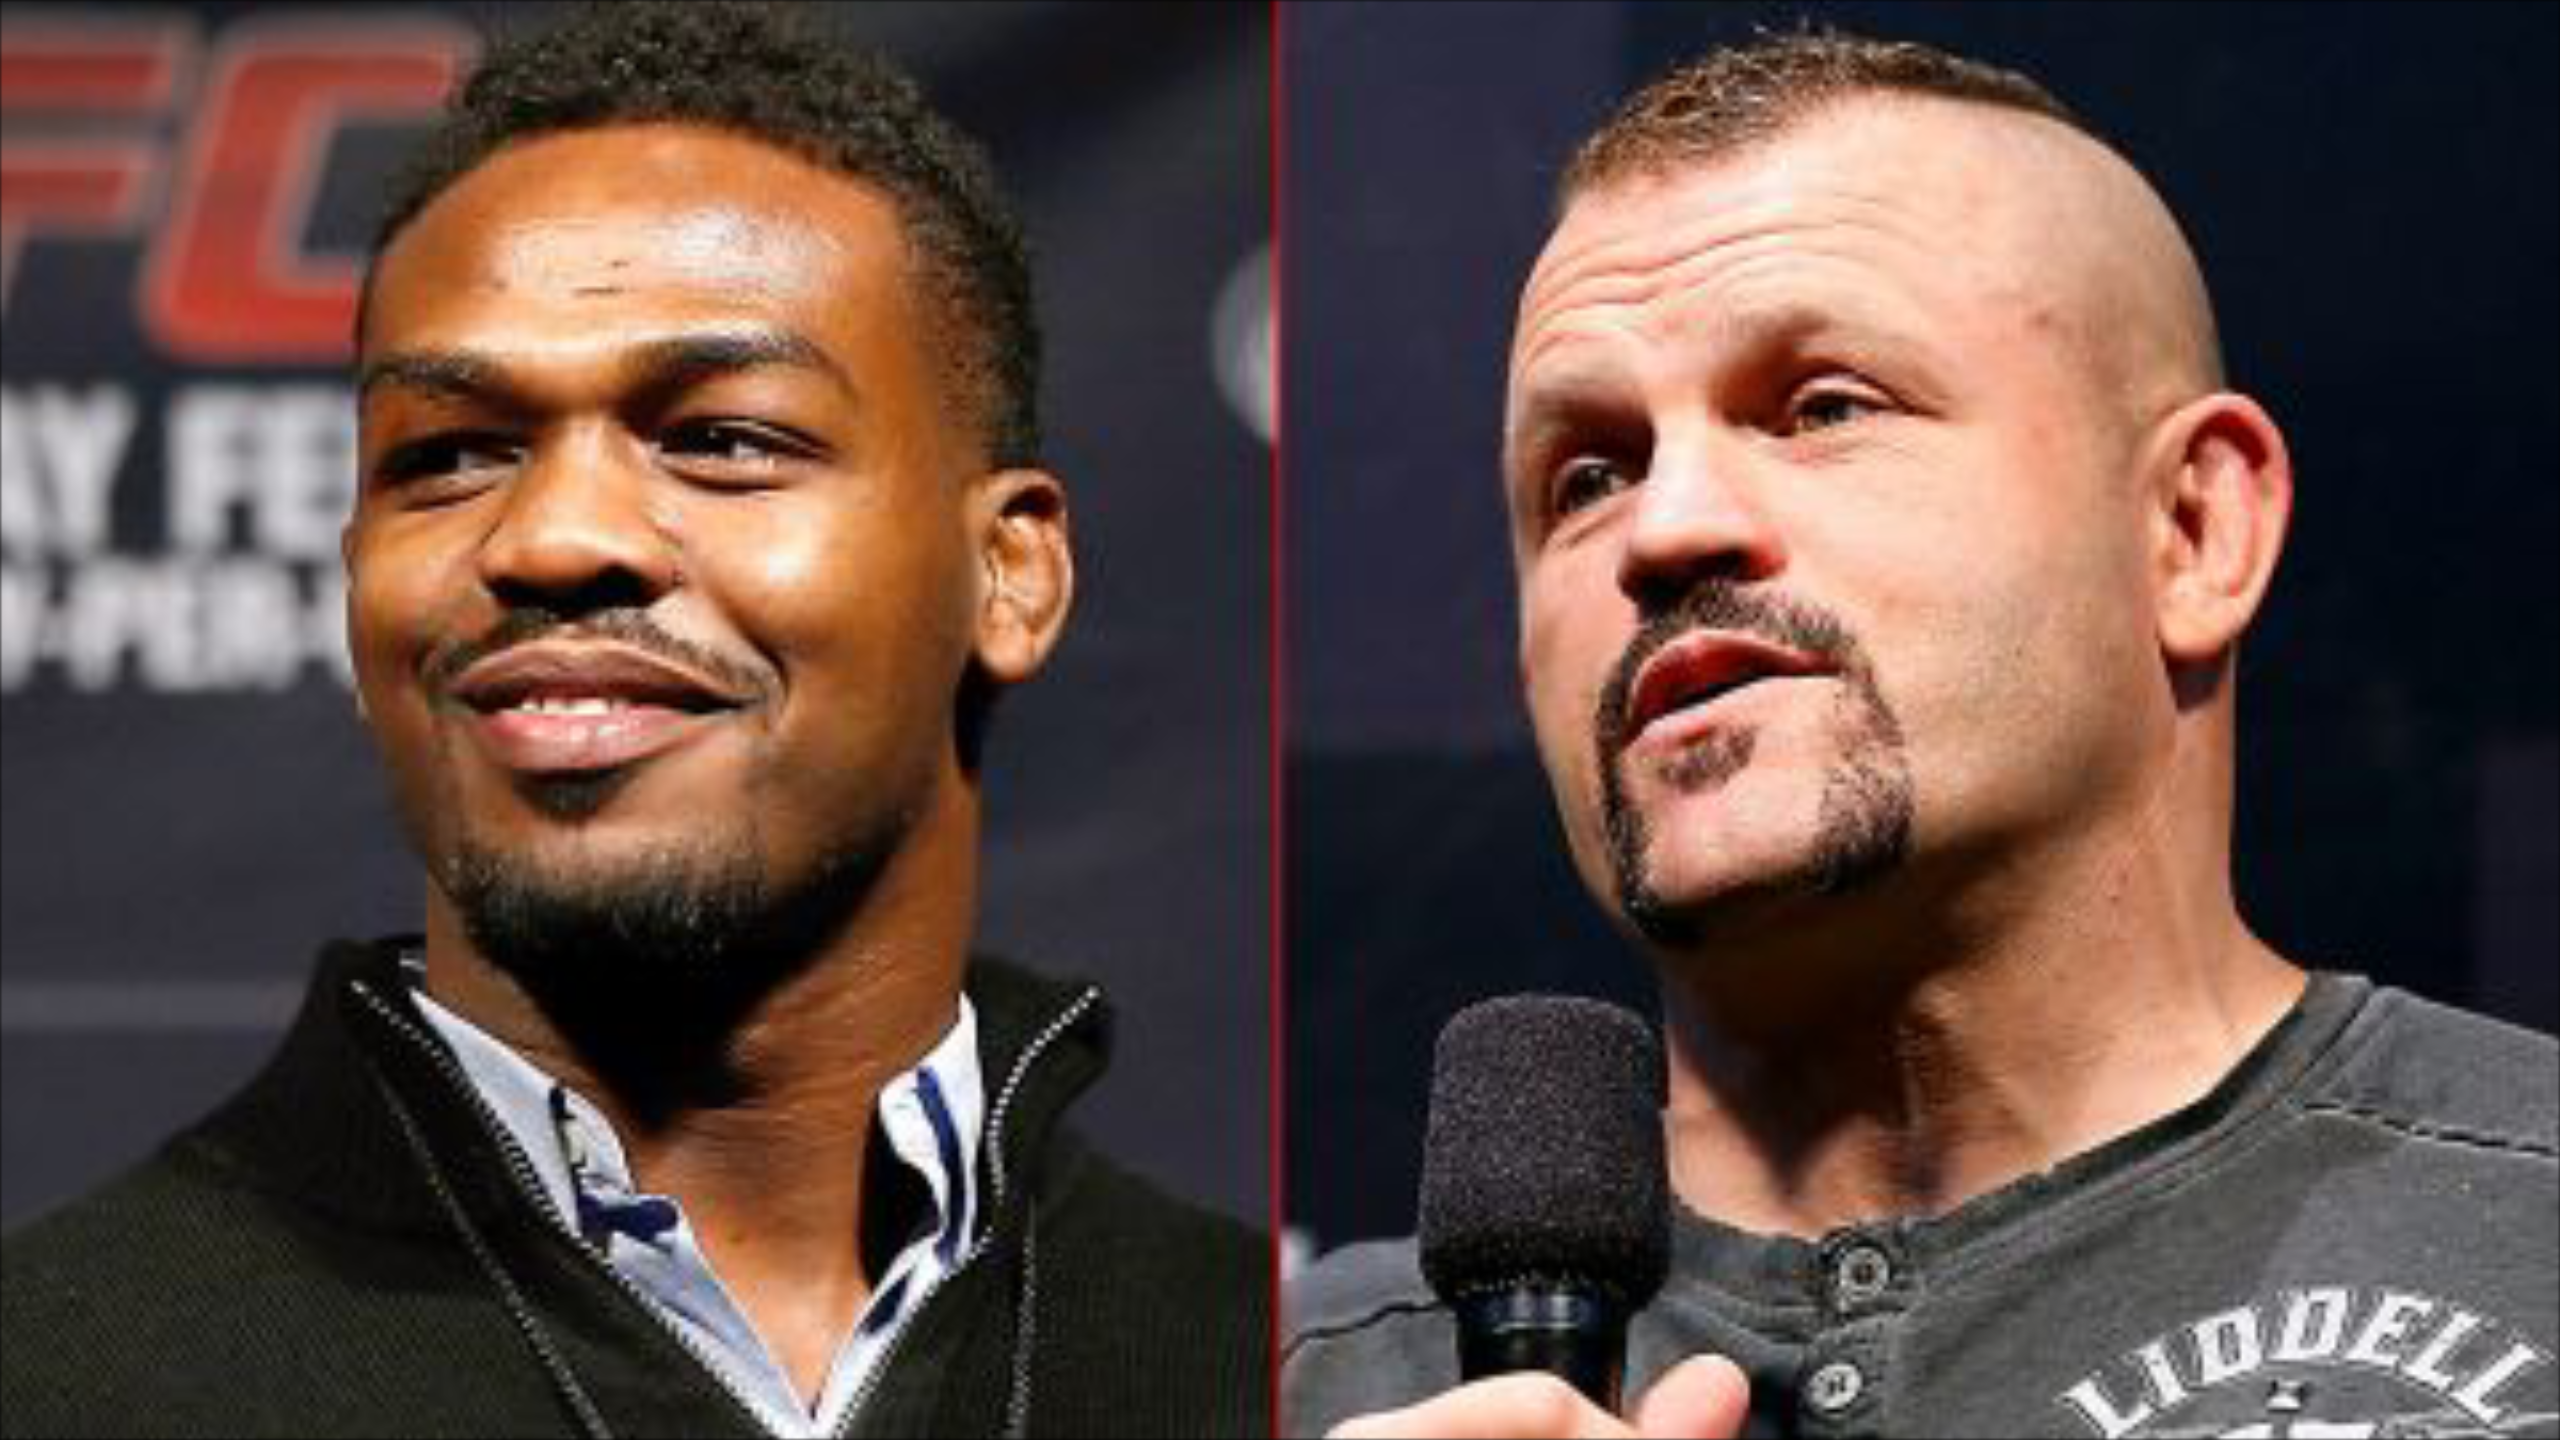 UFC News: Chuck Liddell reveals exactly why he would have given Jon Jones trouble if they fought! - Chuck Liddell